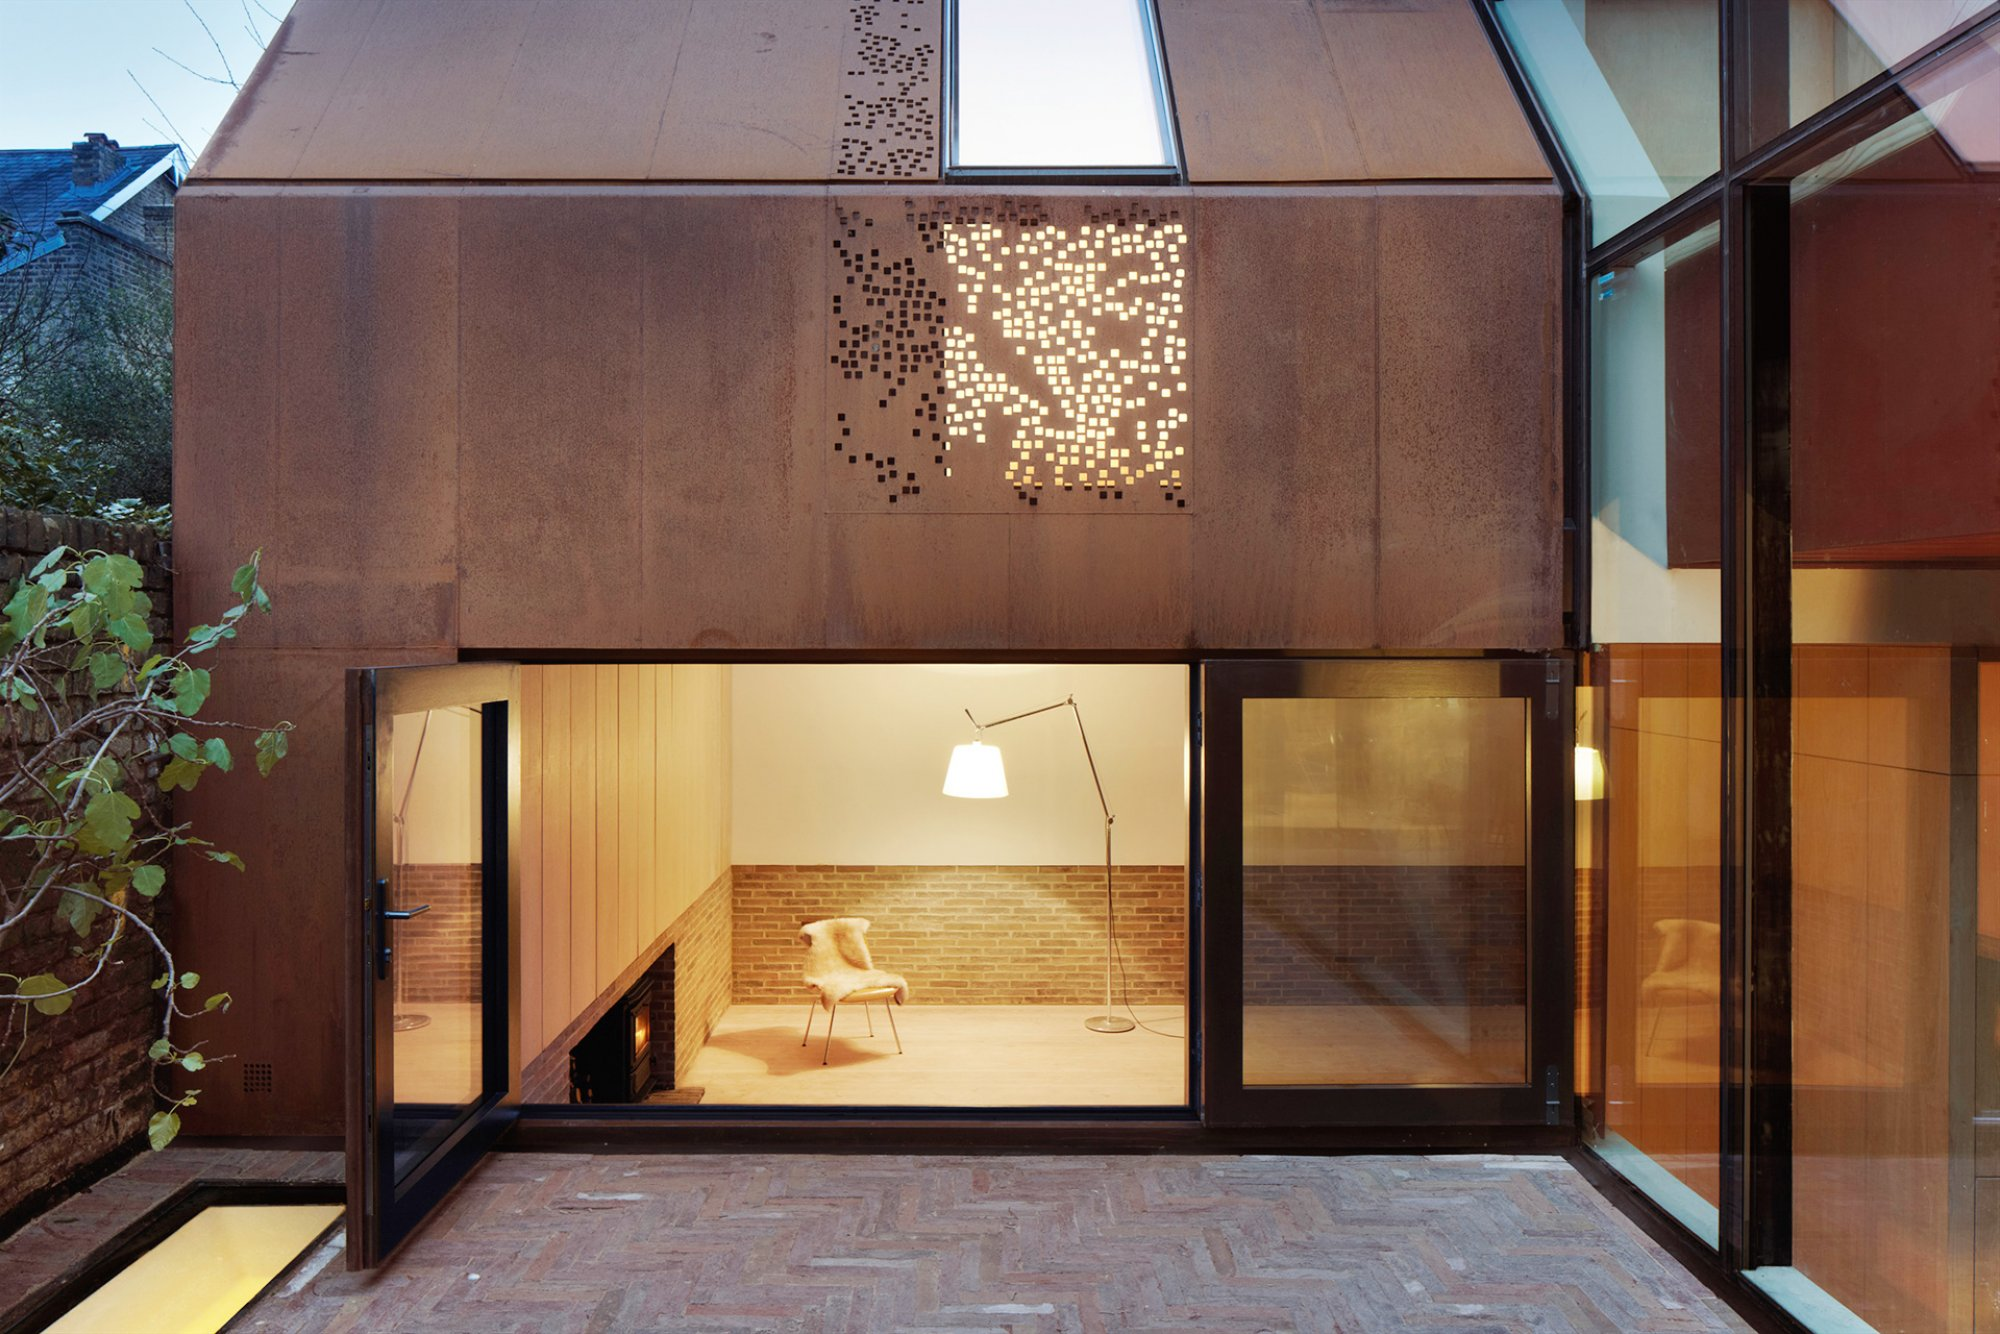 Square hole perforated metal walls - residential project